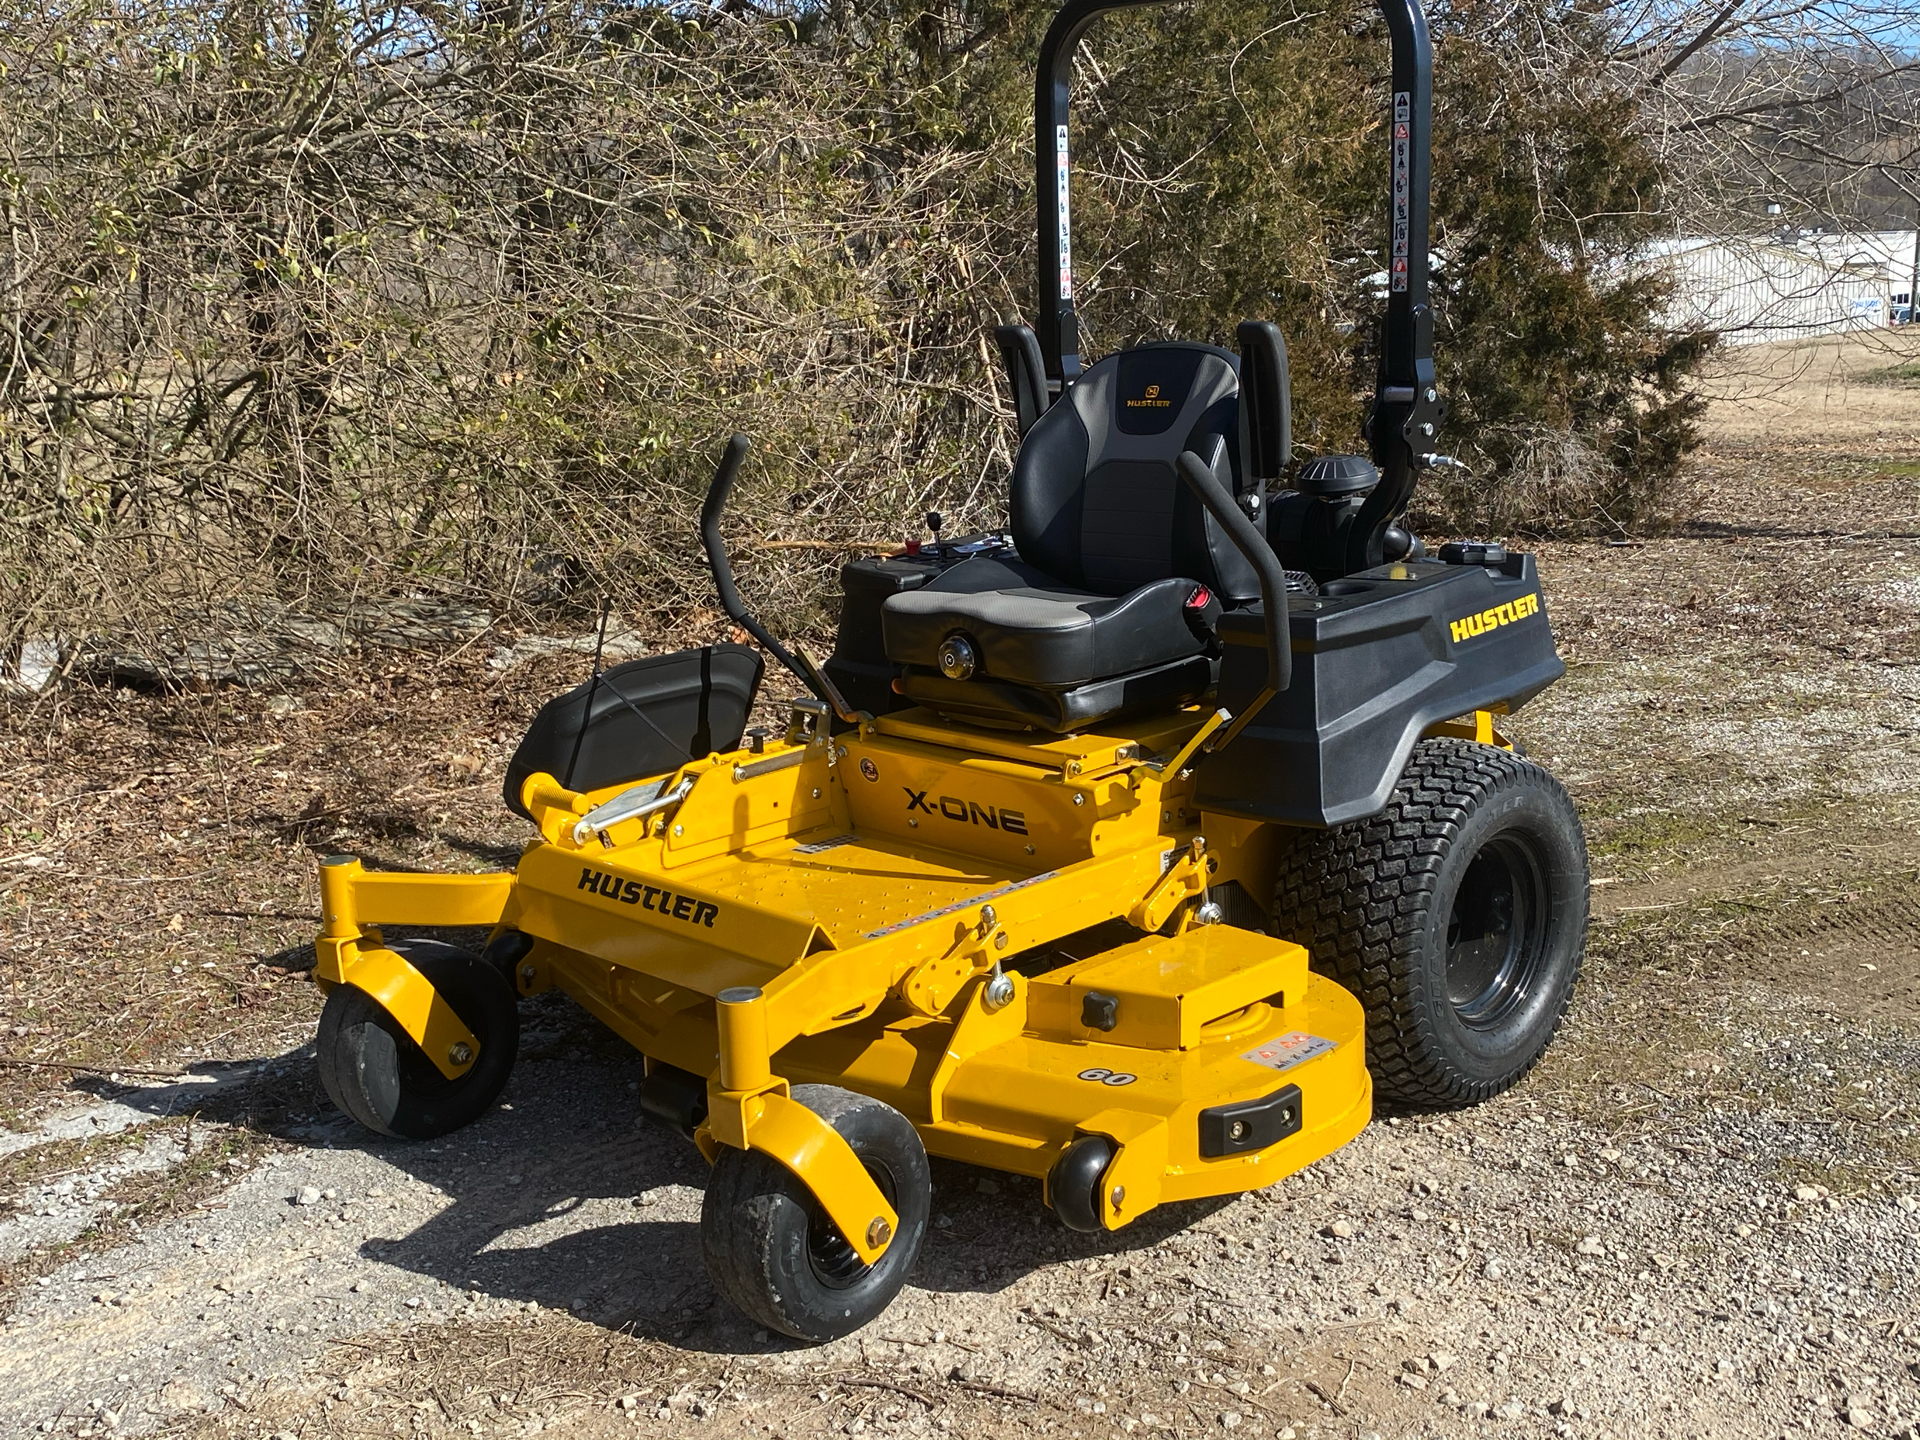 2021 Hustler Turf Equipment X-ONE 60 in. Kawasaki 27 hp in Harrison, Arkansas - Photo 7